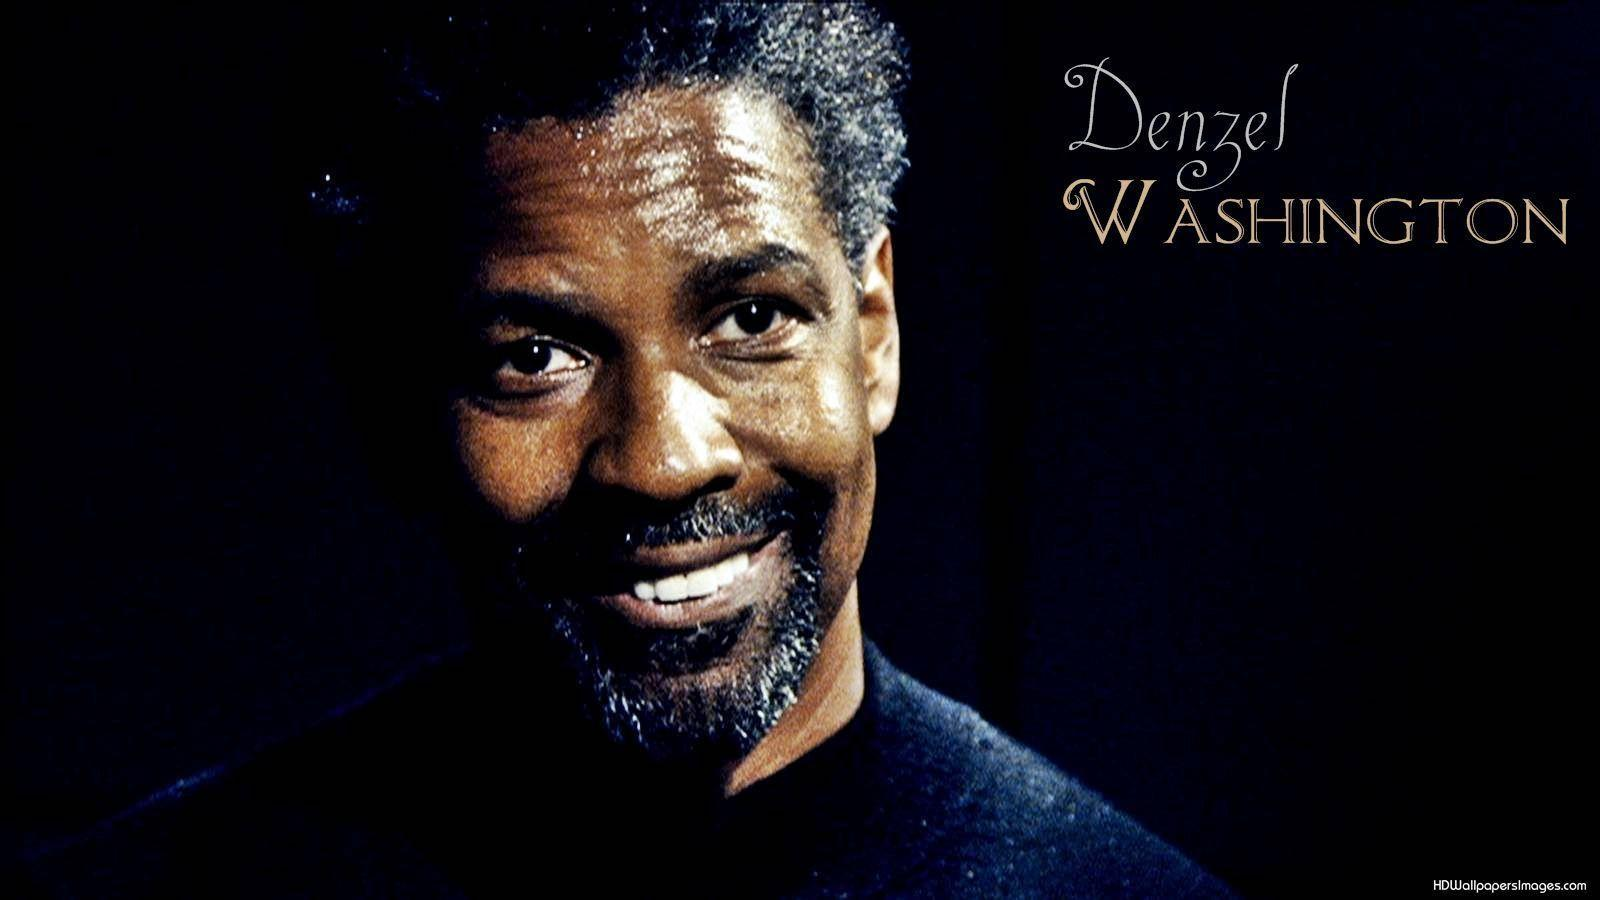 Denzel Washington Wallpapers 41241 Download Free HD Desktop ...